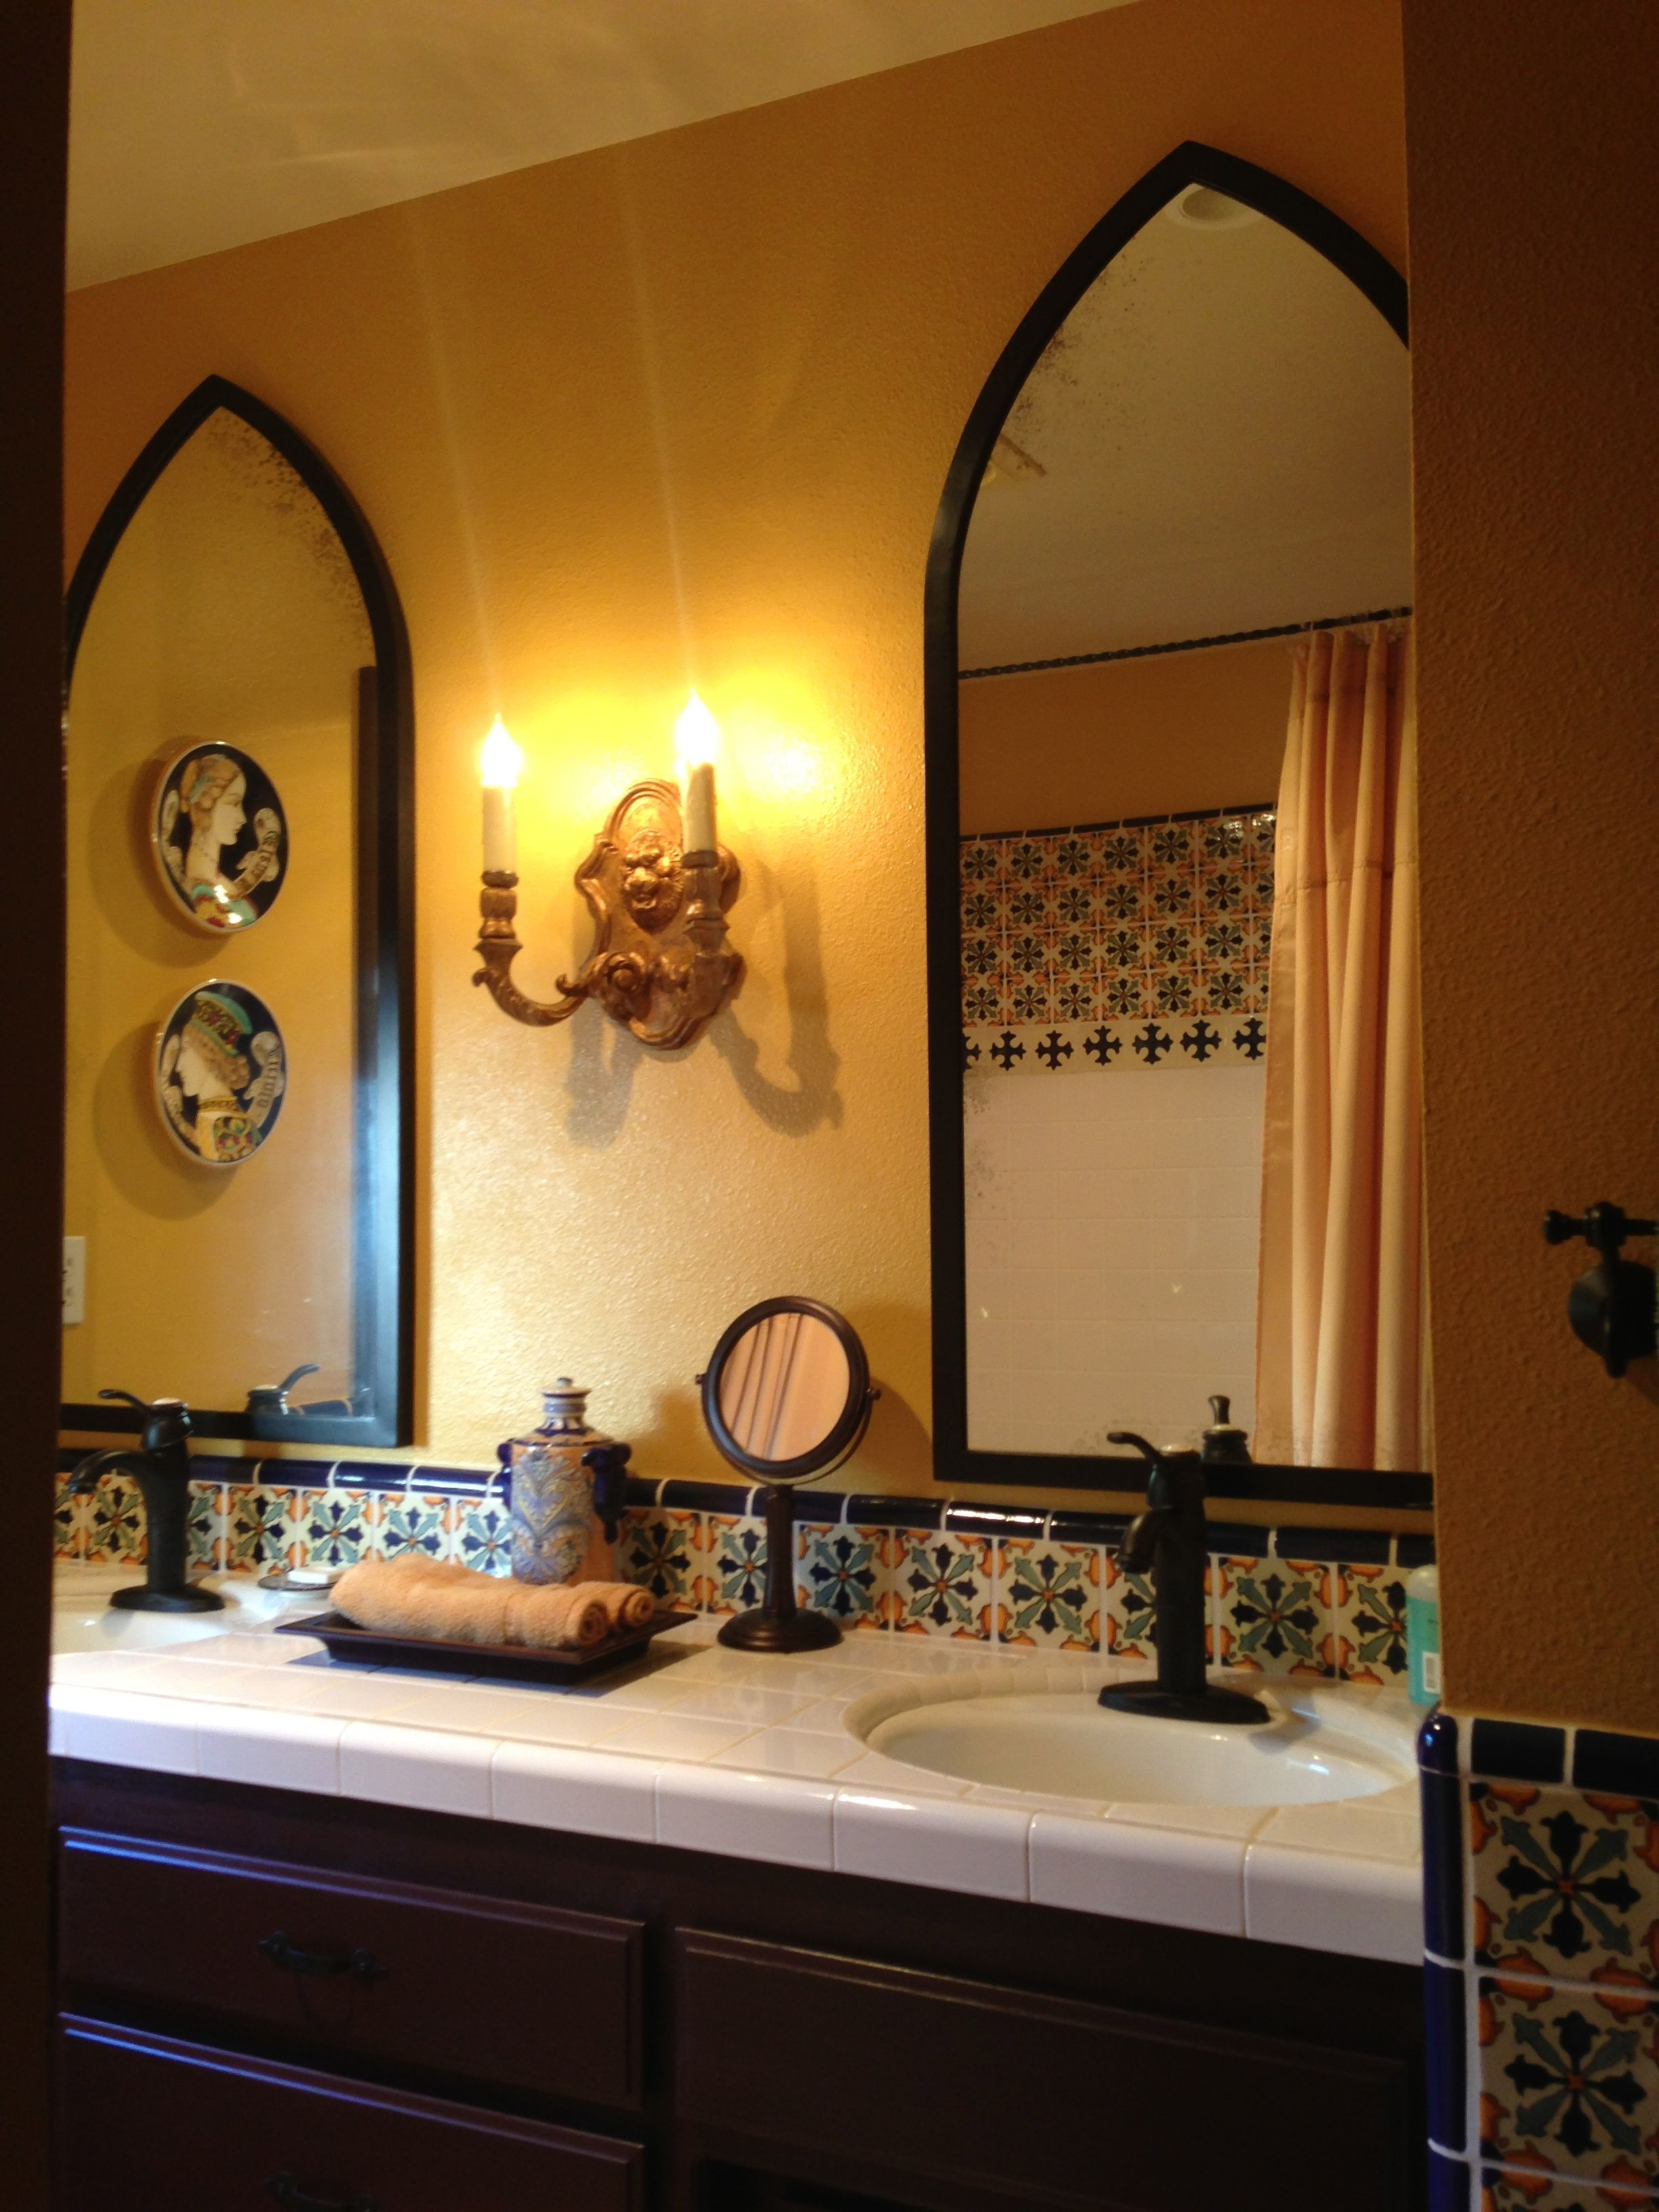 12 Inspirations For Home Improvement With Spanish Home Decorating Ideas: Spanish Bathroom By Killeen Assoc In San Luis Obispo, CA